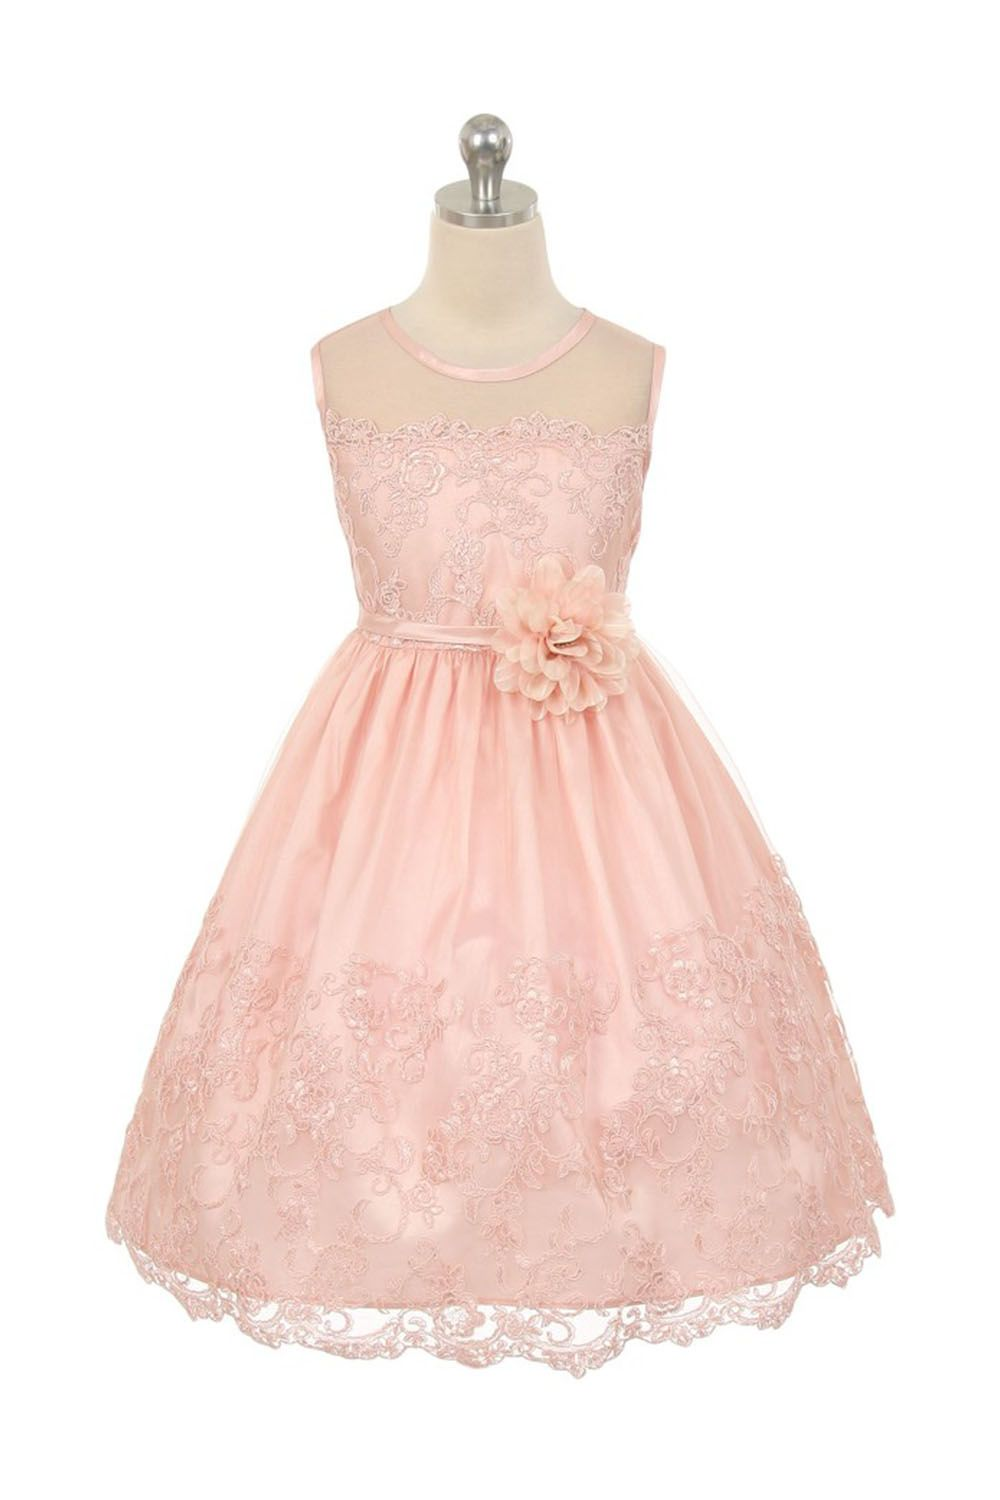 Blush Pink Embroidered Tulle Overlayed Flower Girl Dress With